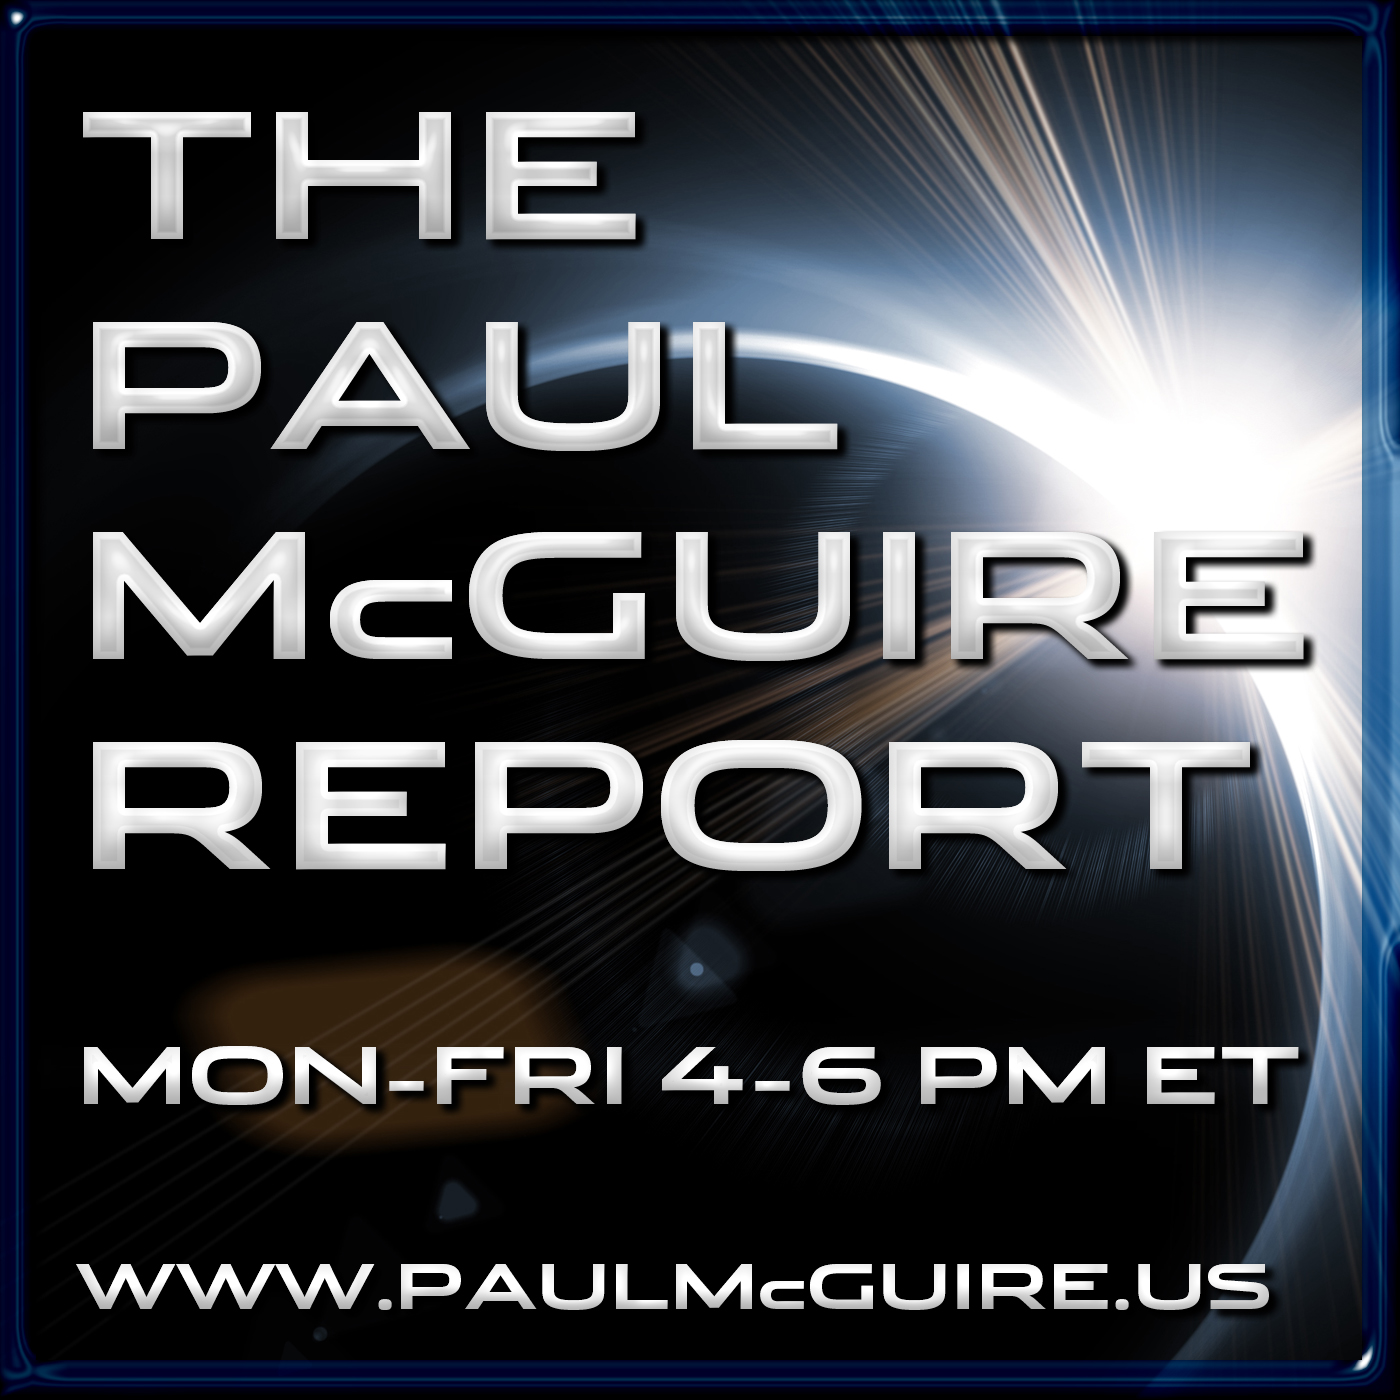 PAUL McGUIRE MINISTRIES